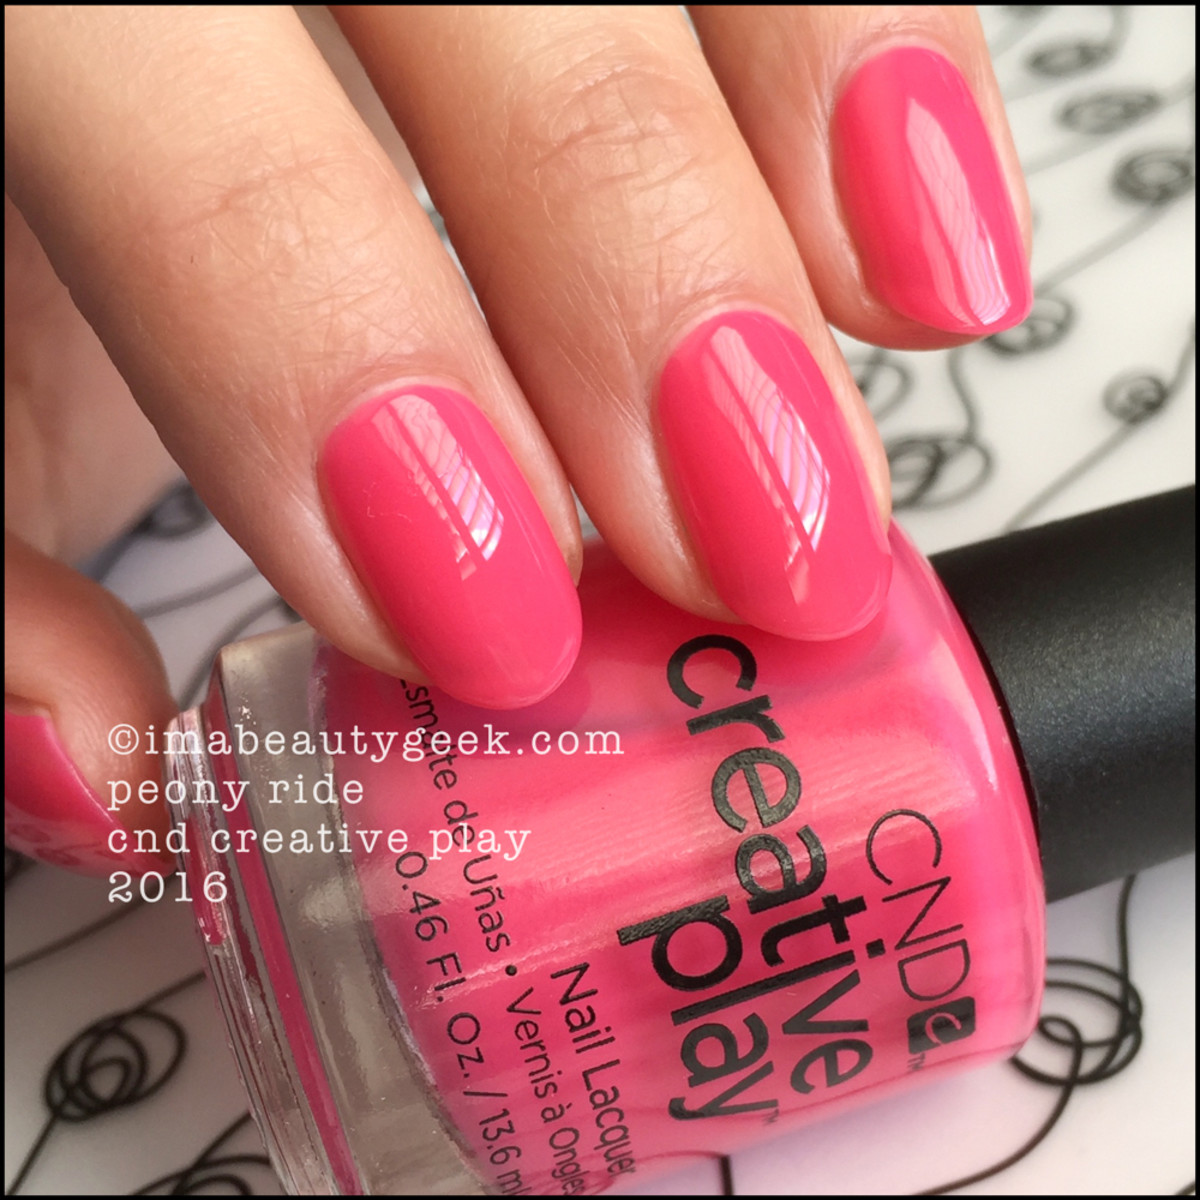 CND Creative Play Peony Ride_CND Creative Play Nail Polish Swatches 2016